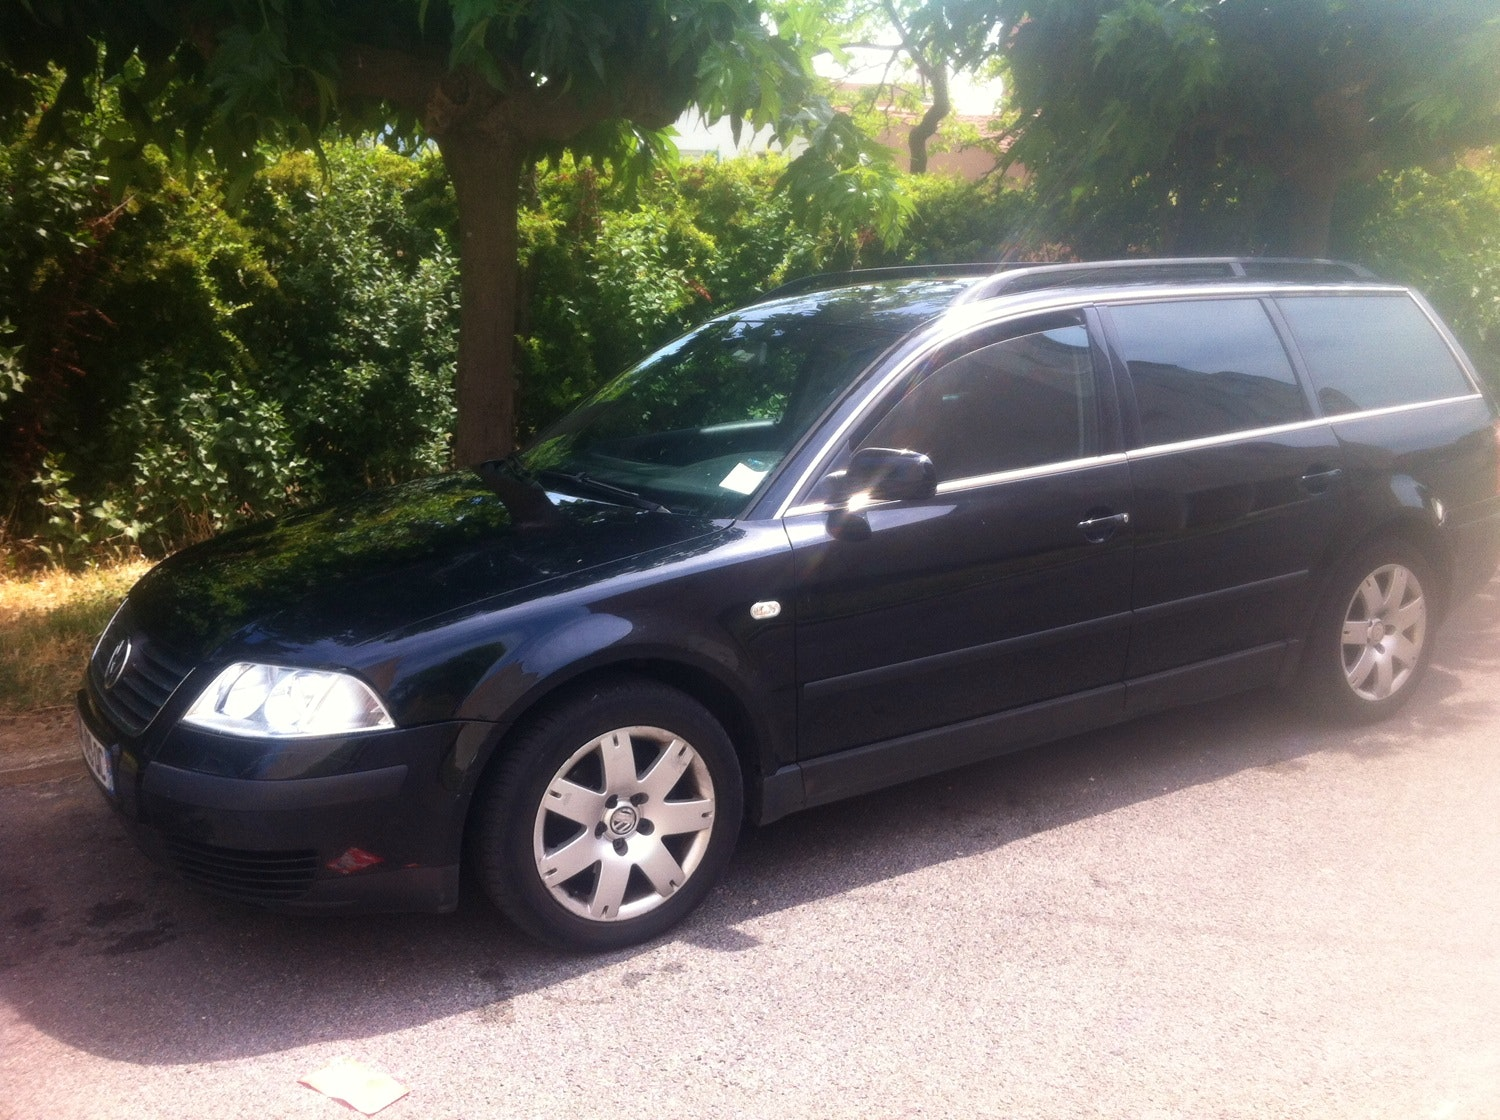 Volkswagen Passat Break Tdi, 2003, Diesel - Berline Draguignan (83)